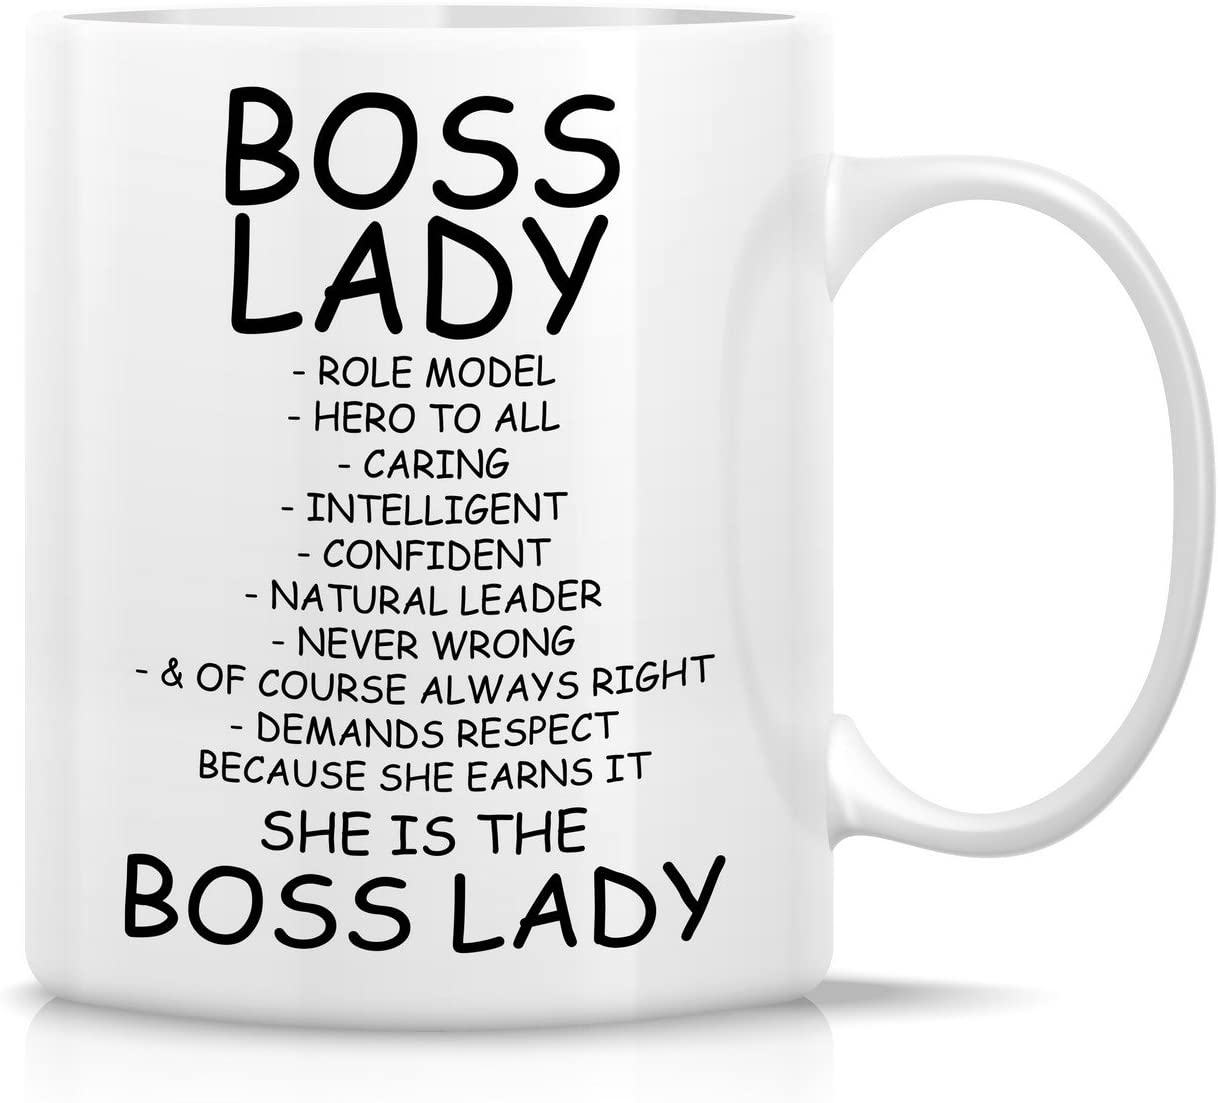 Retreez Funny Mug - Boss Lady Role Model Caring Description 11 Oz Ceramic Coffee Mugs - Funny, Sarcasm, Motivational, Inspirational birthday gifts for friends, coworkers, employer, siblings, dad, mom